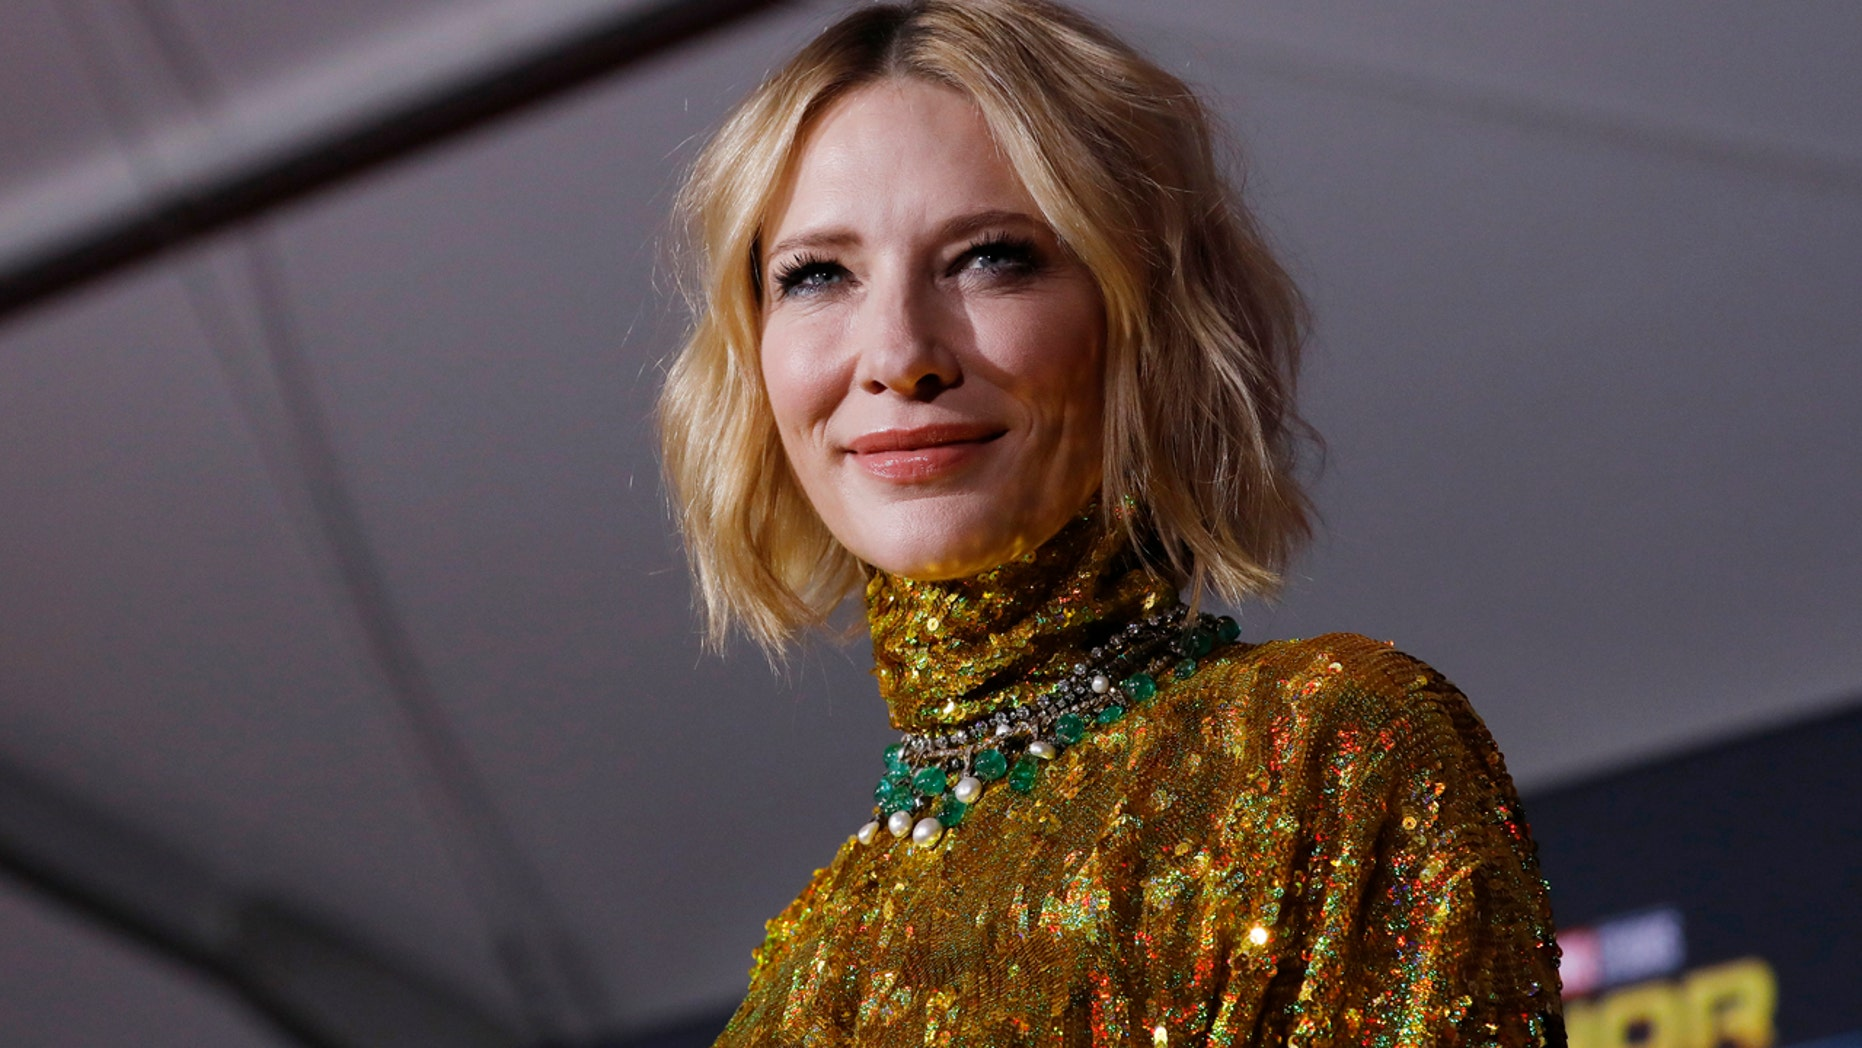 Cate Blanchett shares her thoughts on the Woody Allen allegations in a new interview.